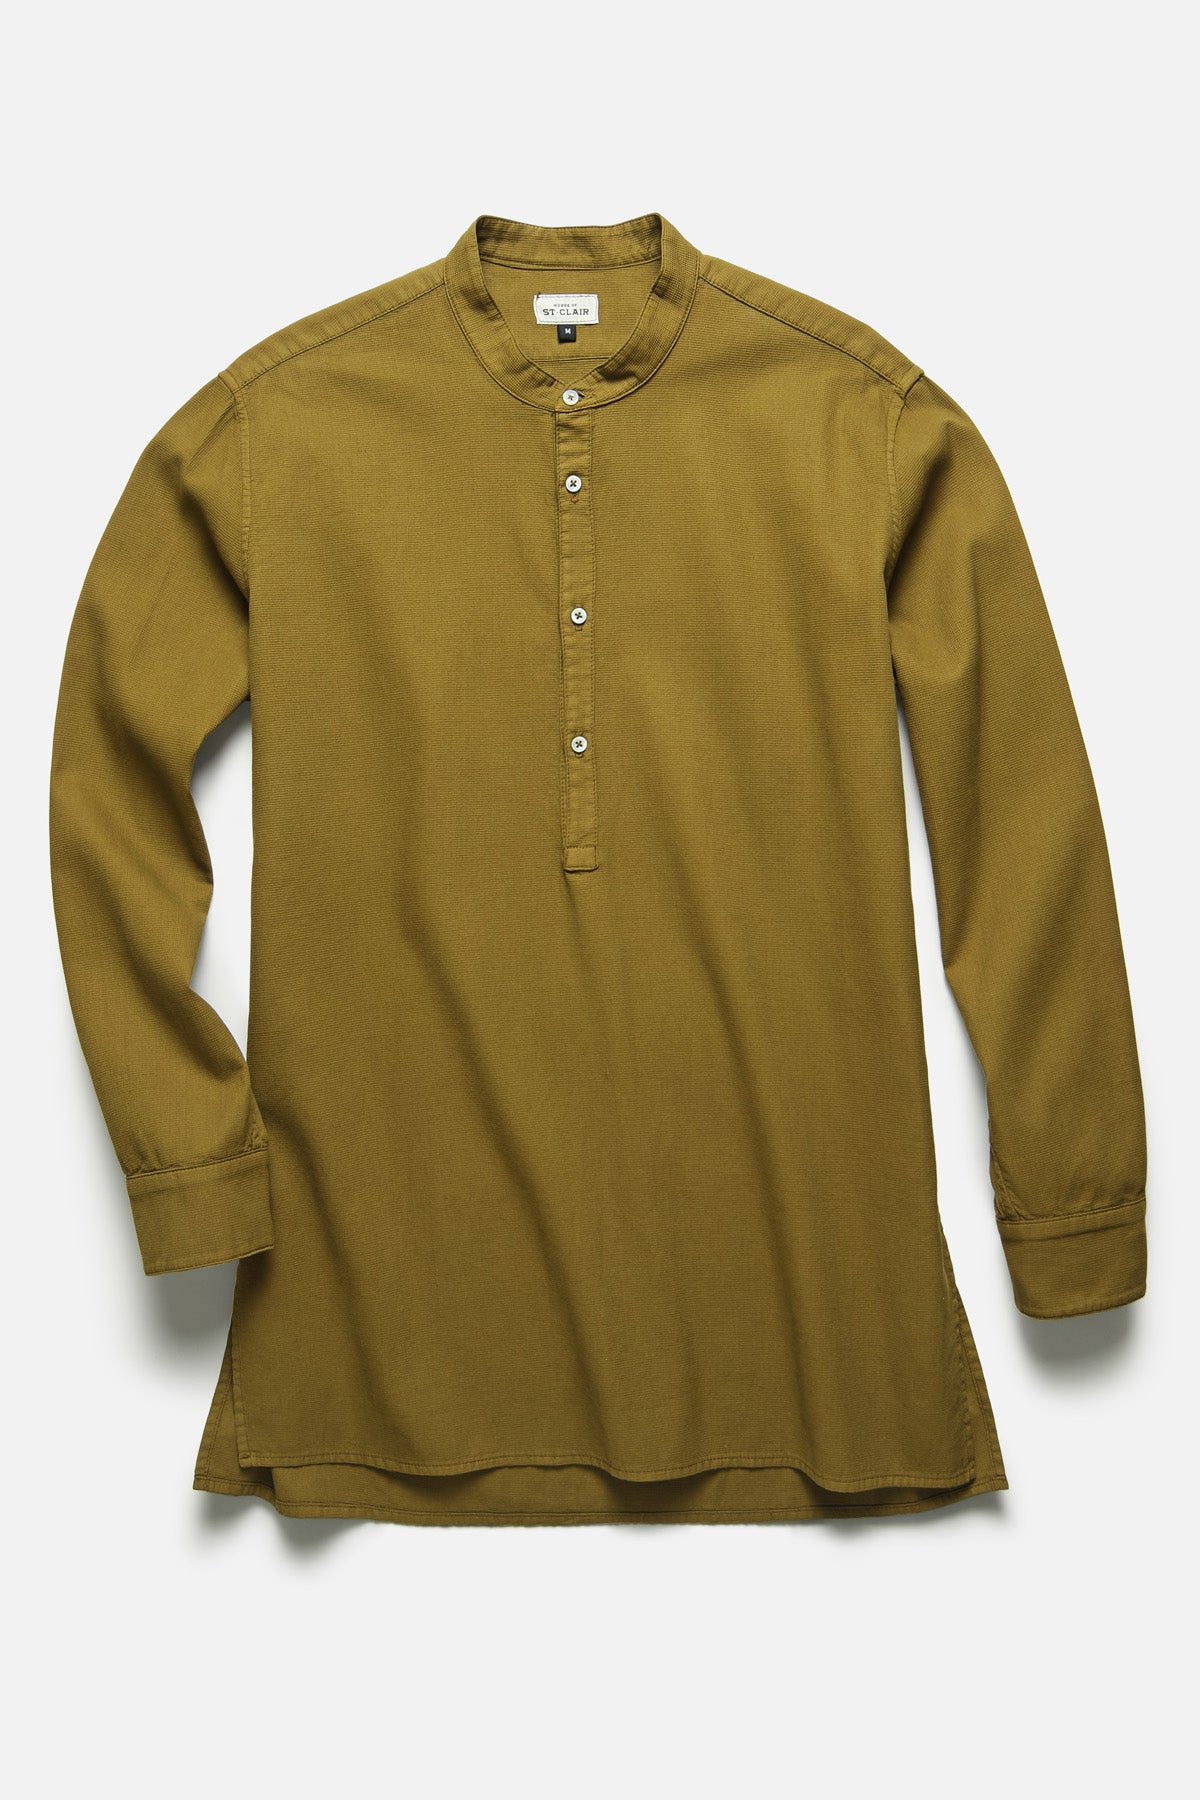 POPOVER TUNIC IN OLIVE - Fortune Goods